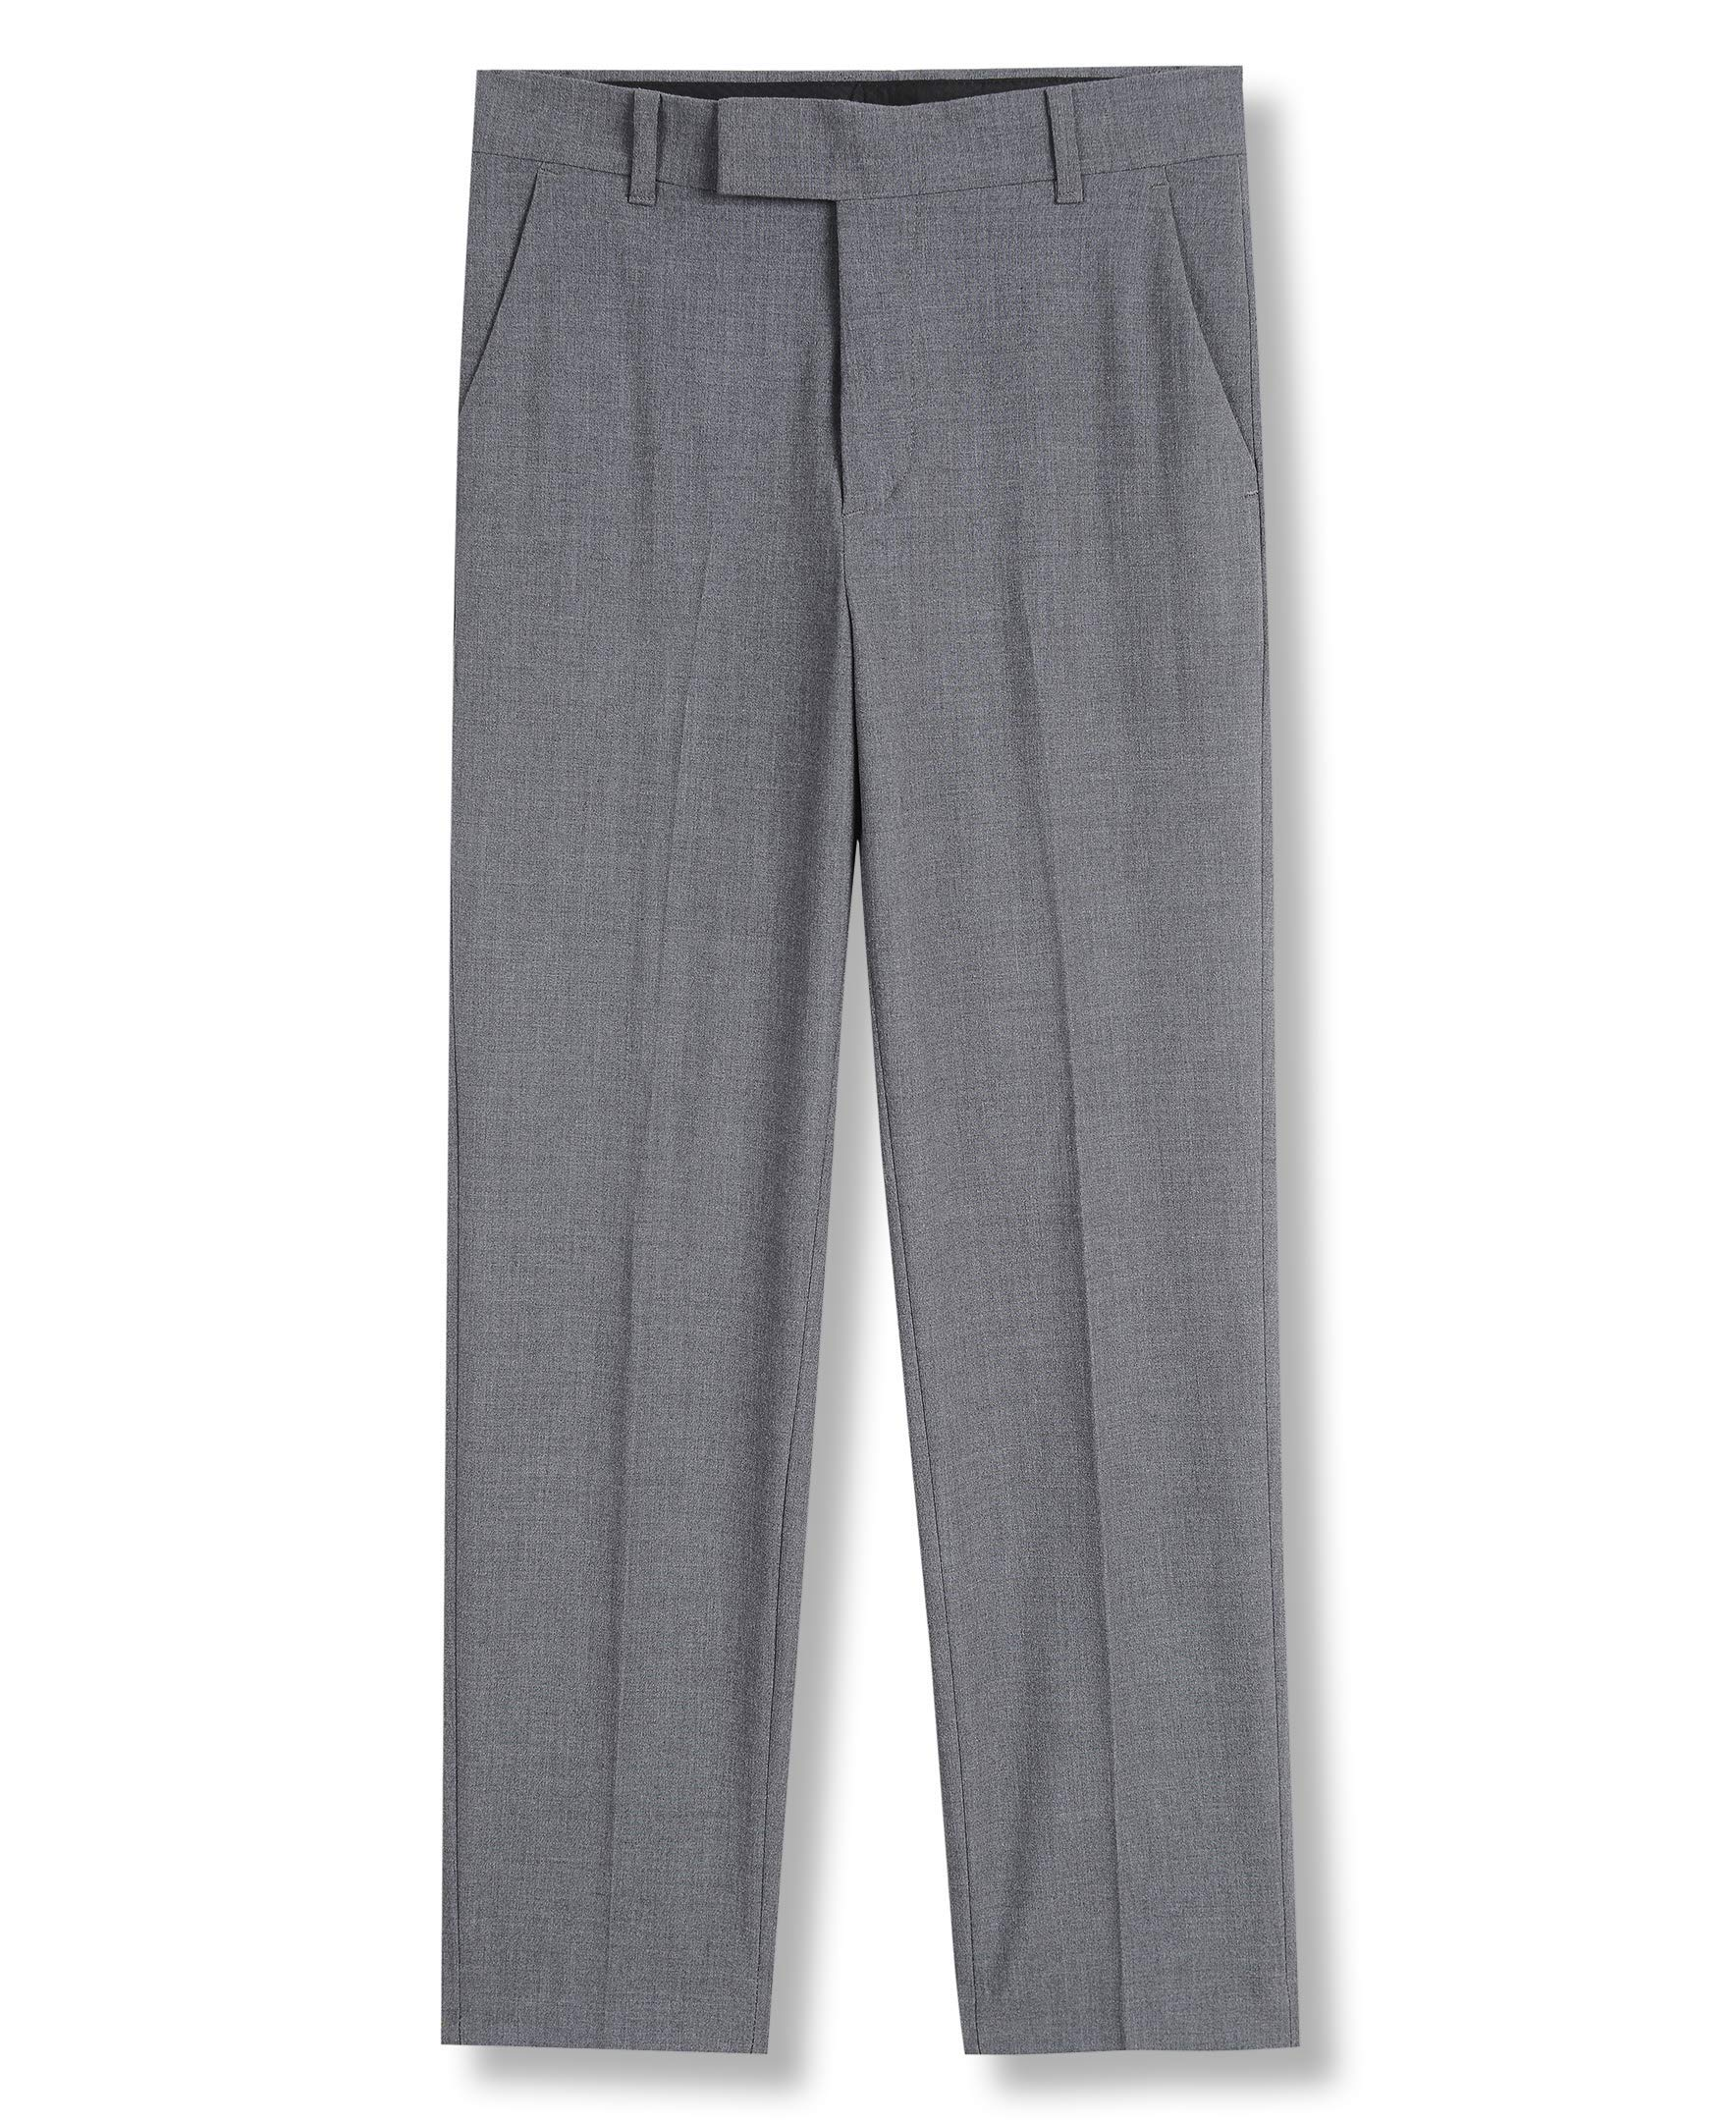 Calvin Klein Boys' Big Bi-Stretch Flat Front Dress Pant, Grey Heather, 12 by Calvin Klein